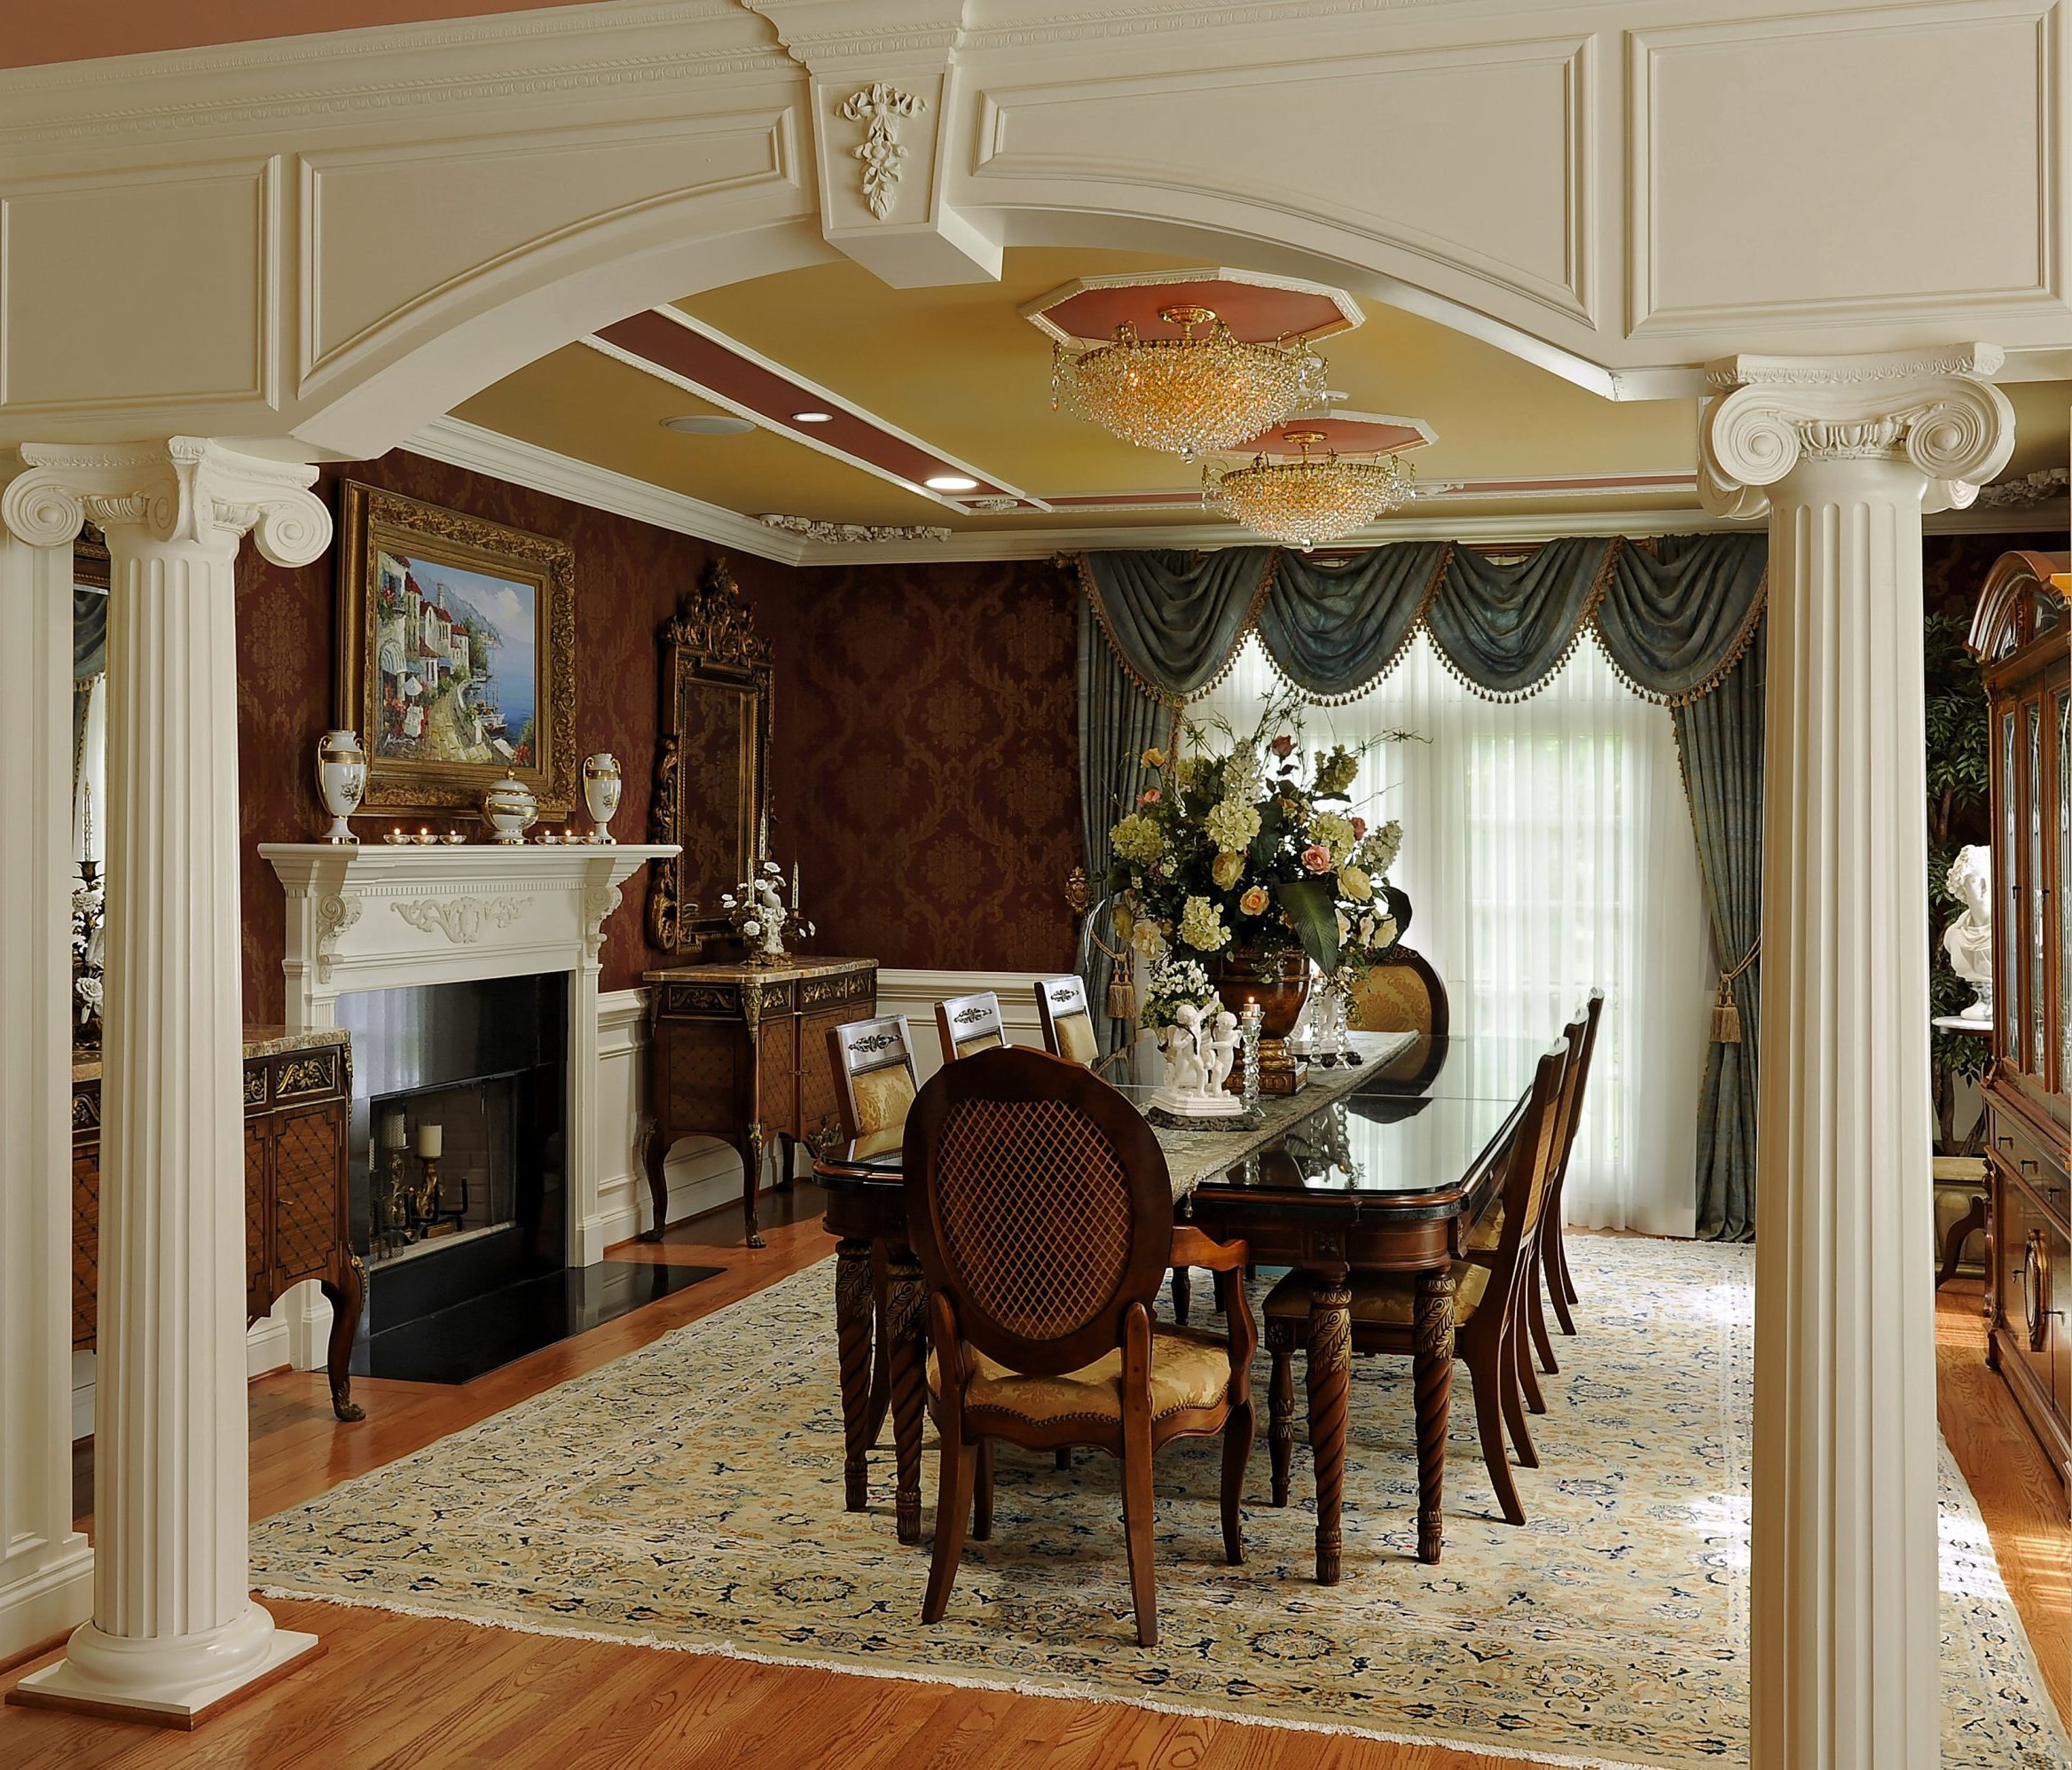 Potomac-MD-Interior-Designer-Shiva-Rostami-Dining-Room-entrance-feature-millwork-McLean-VA